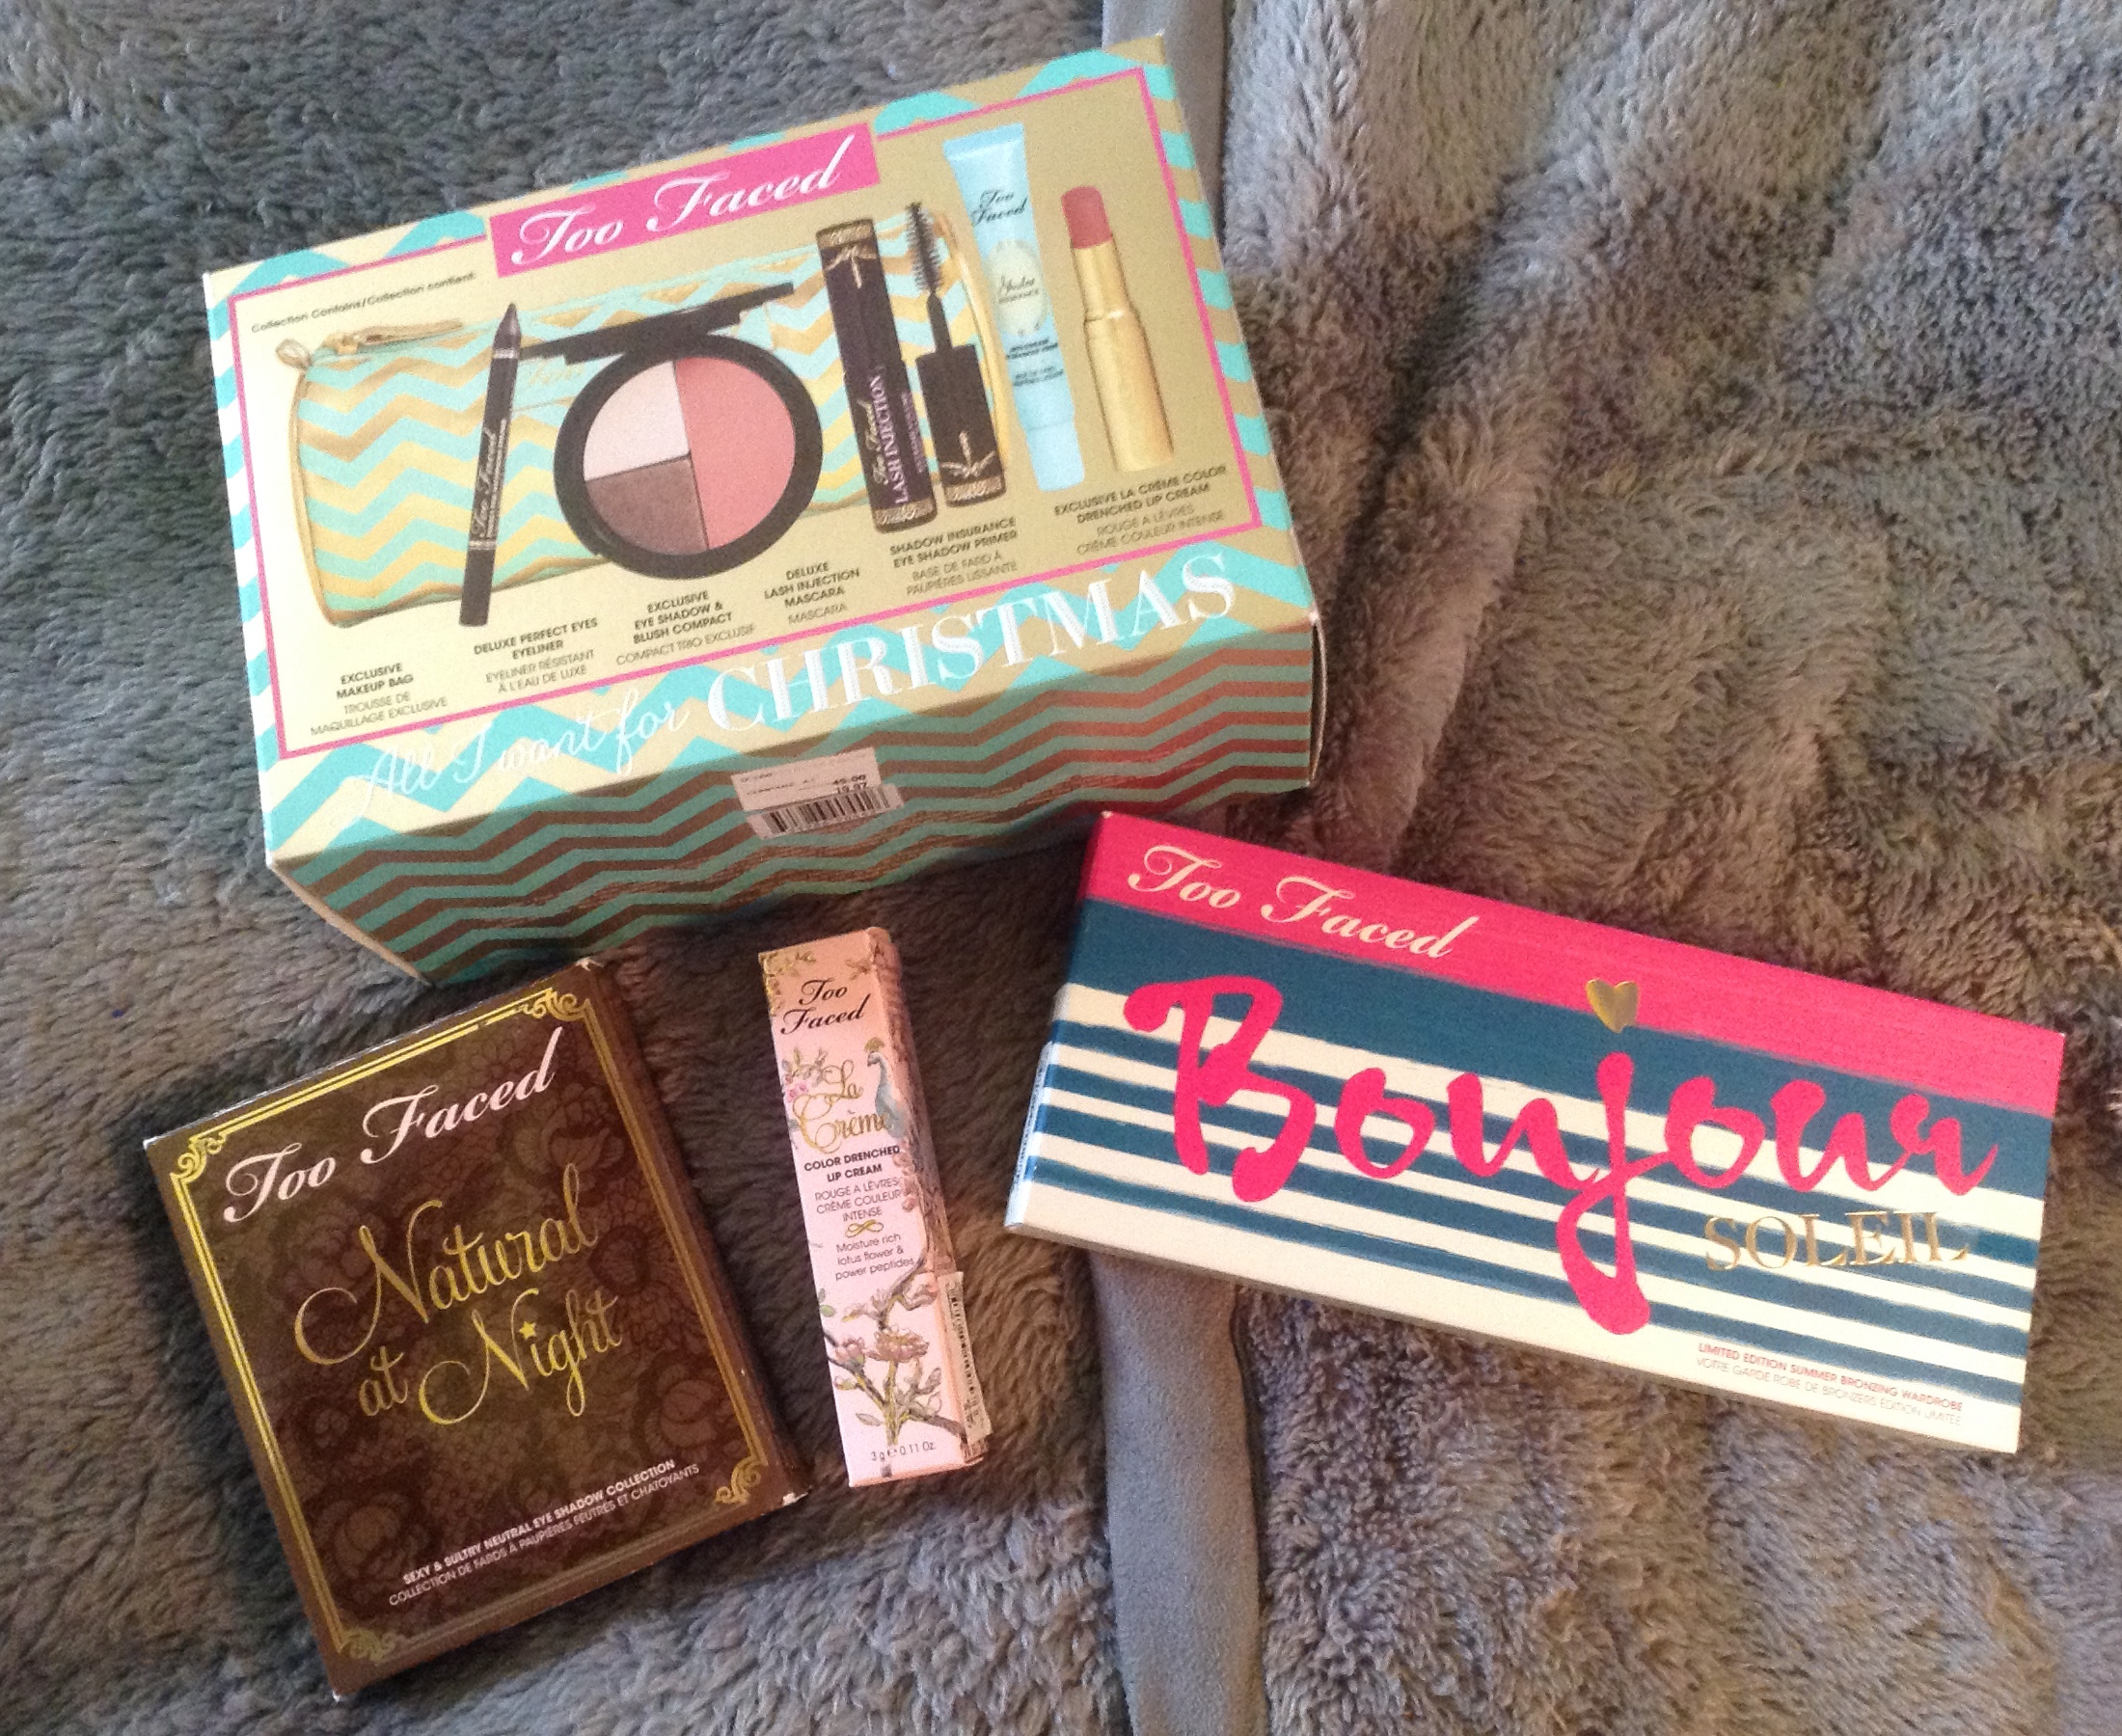 c8187b222c2 Everything that i got at Nordstrom Rack yesterday were Too Faced products,  and let me tell you, the deals were great! These are the products I decided  to ...